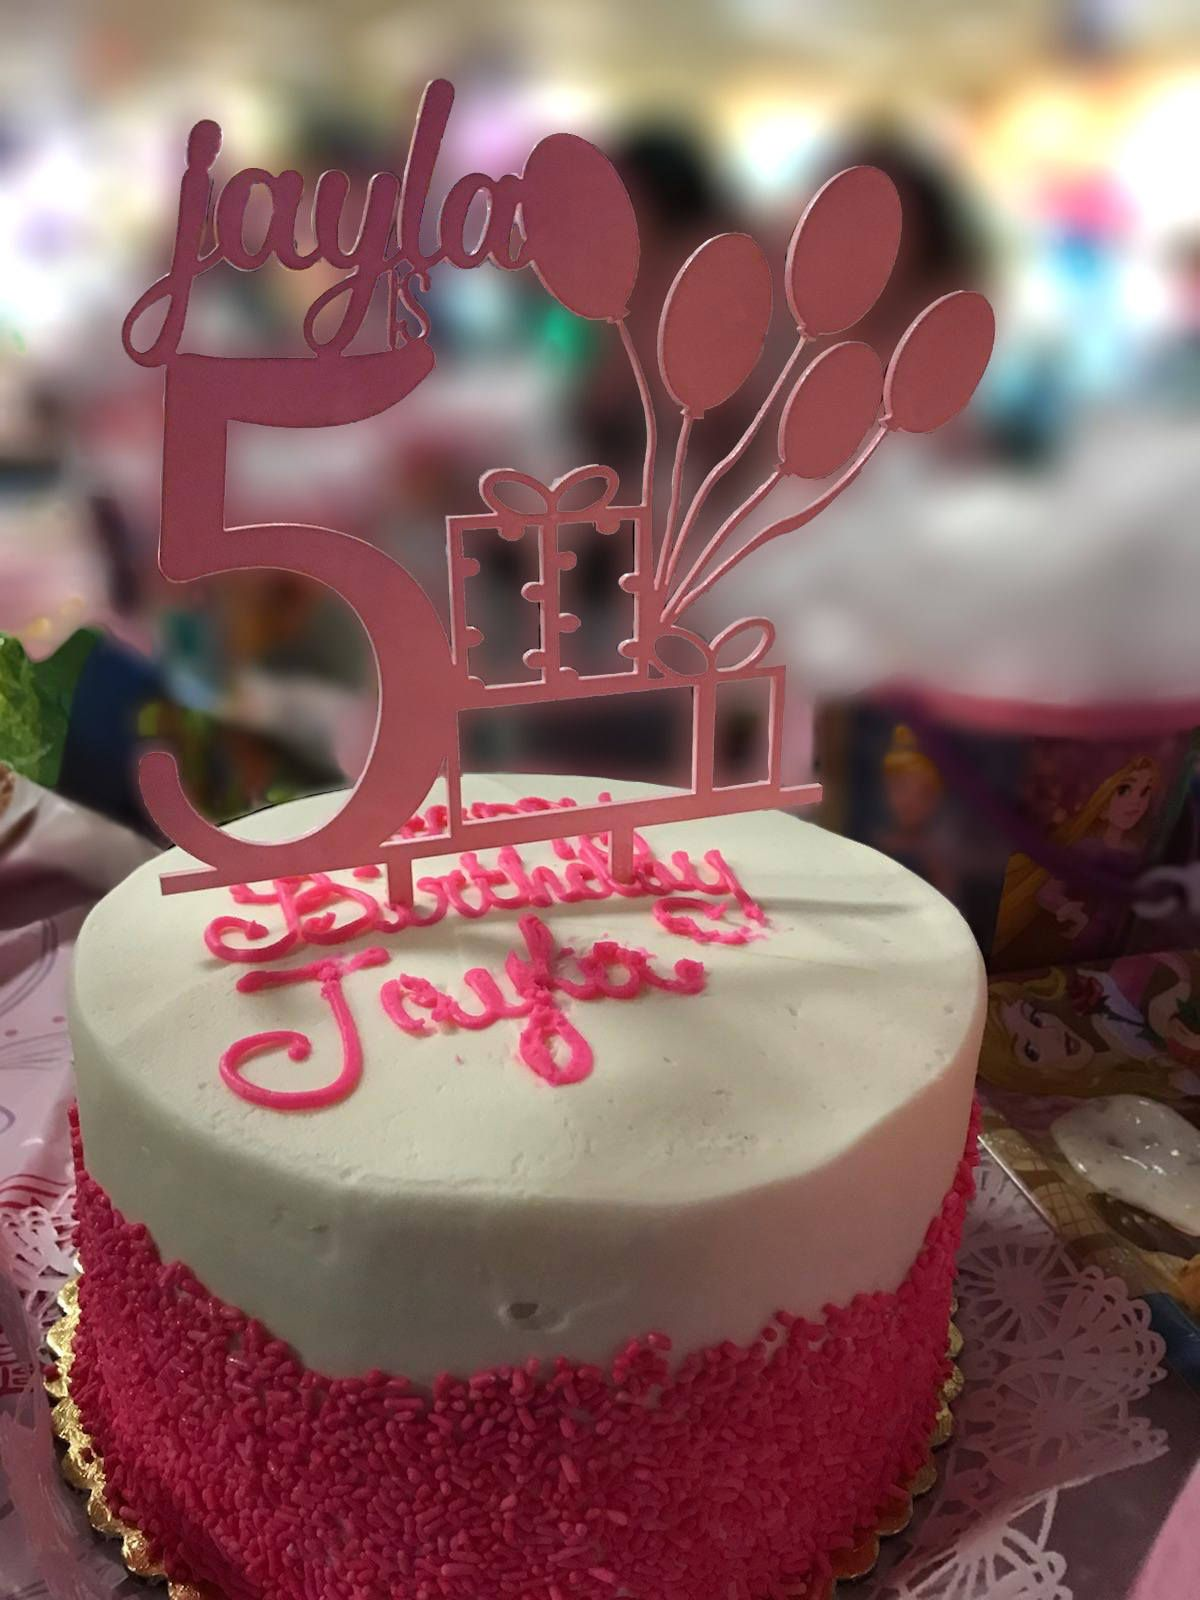 Birthday Cake Topper, Personalized Cake Topper (With